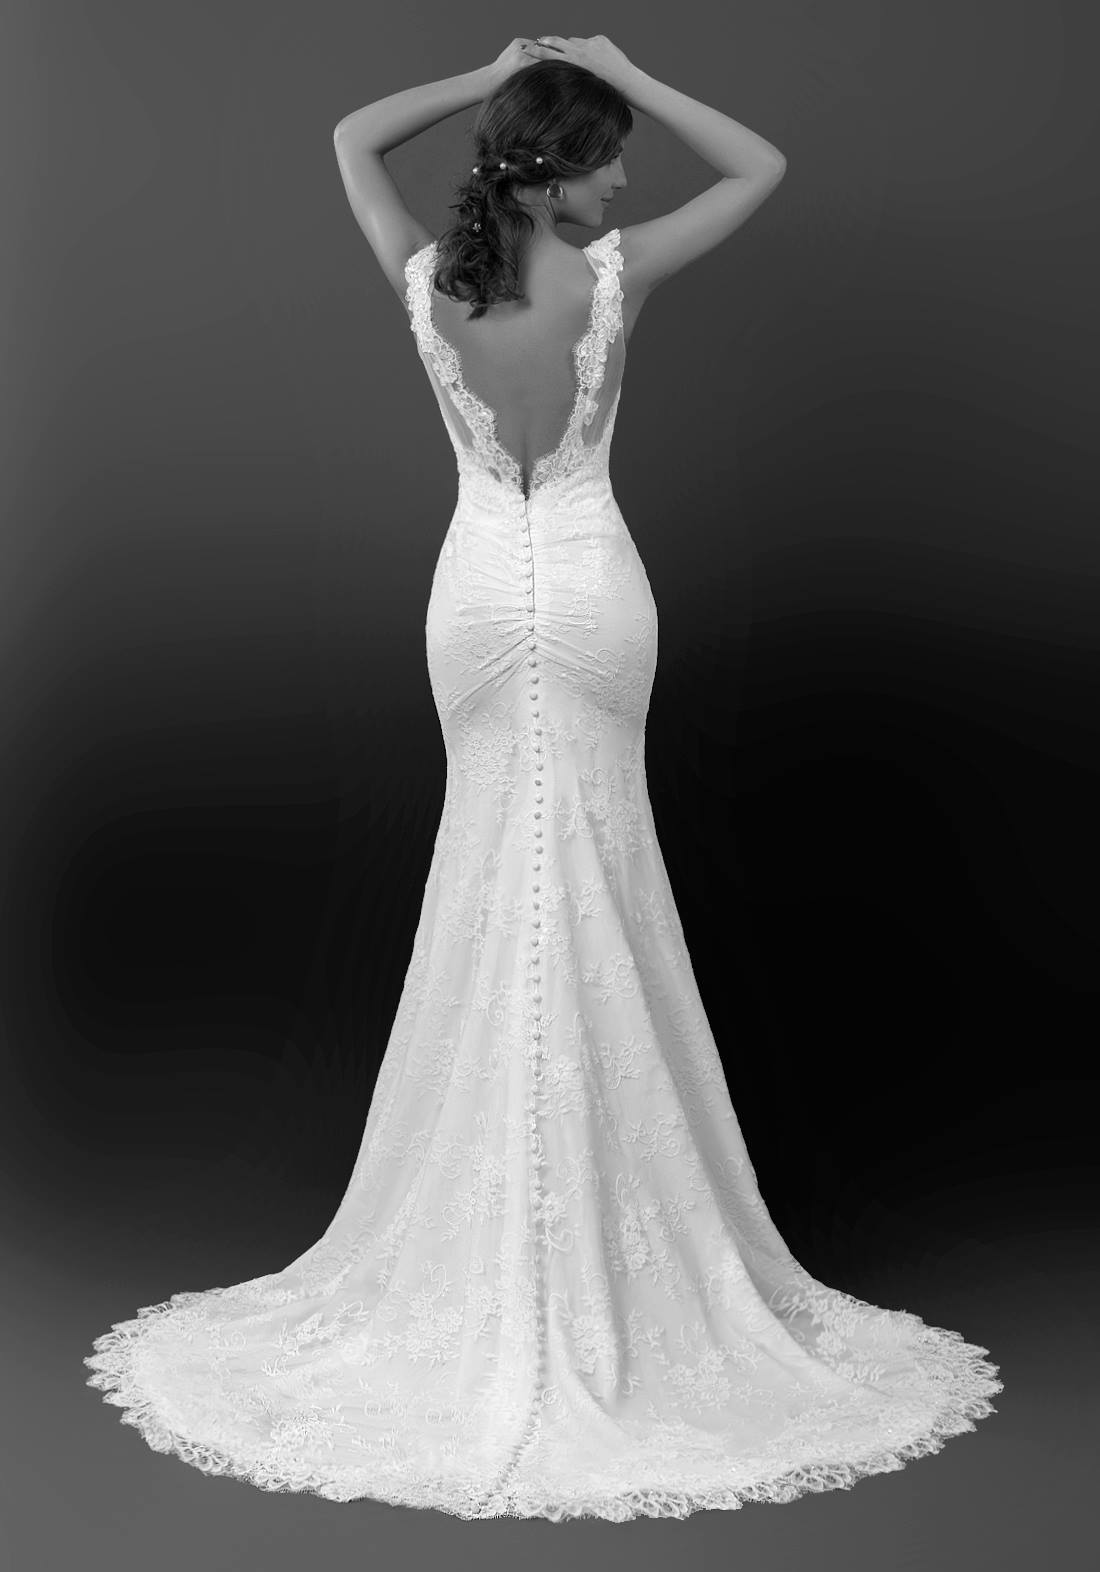 bien-savvy-wedding-dresses-17-08272014nz